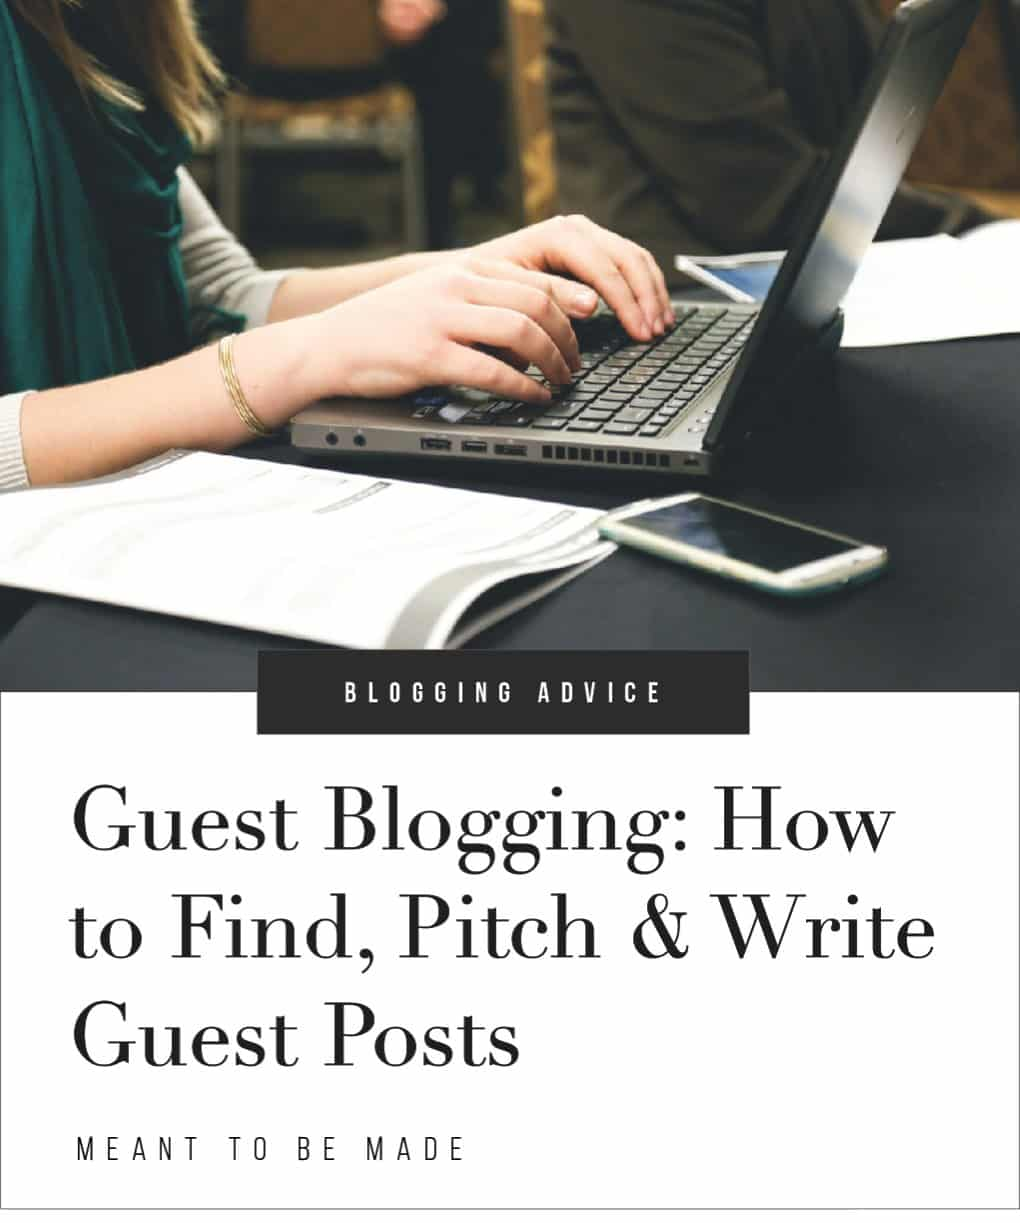 Guest Blogging: How to Find, Pitch & Write Guest Posts